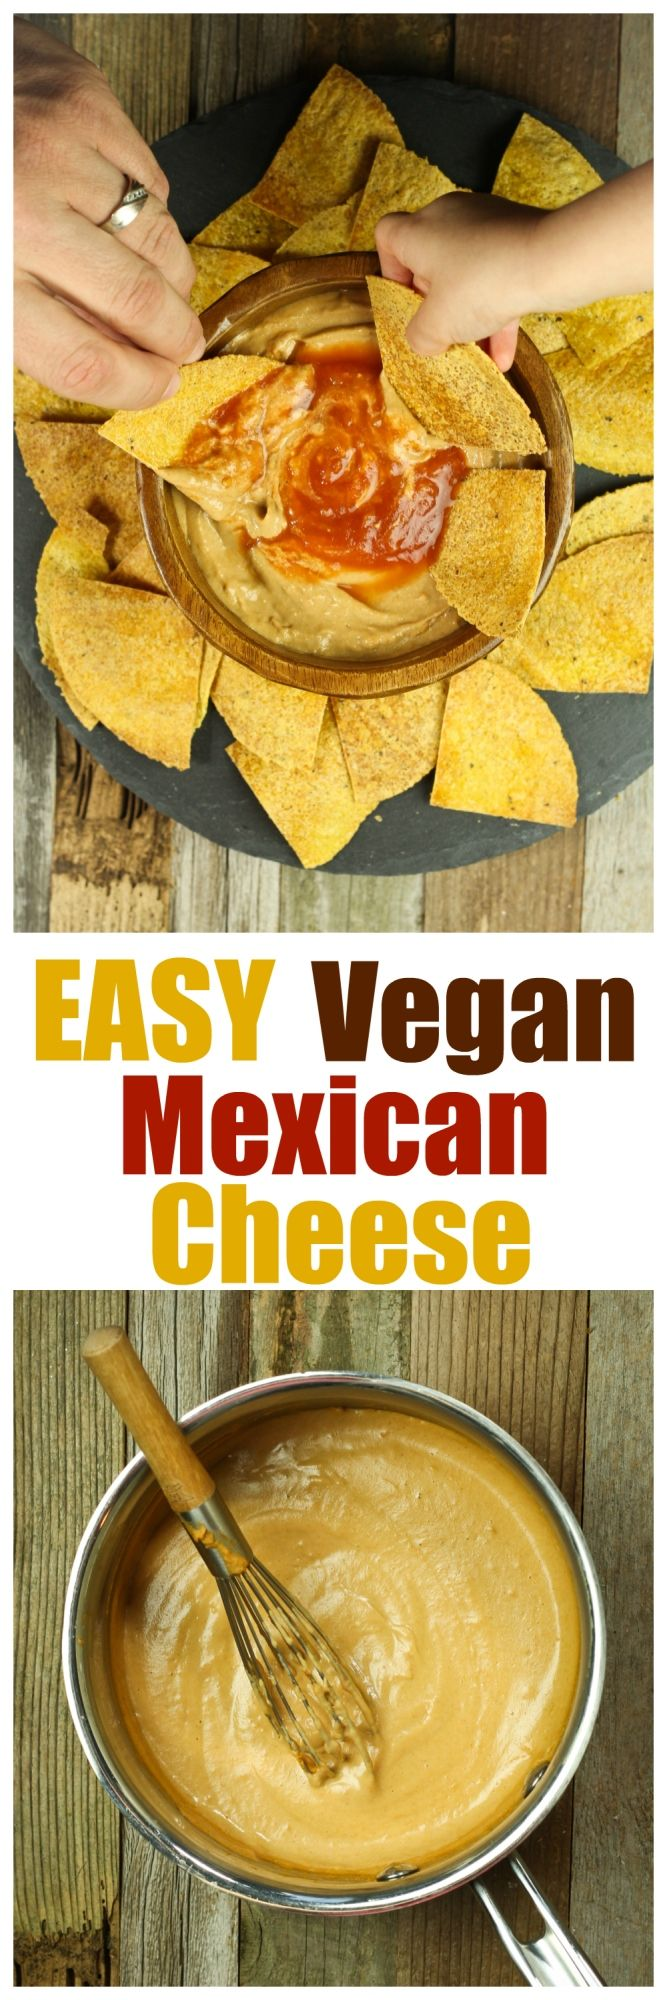 Downright Addictive! ONLY 6 ingredients and 10 minutes is all  you need to make this  Easy Vegan Mexican Cheese Sauce! Goes amazing on tacos, burritos or just as a dip. Healthy and oil-free!